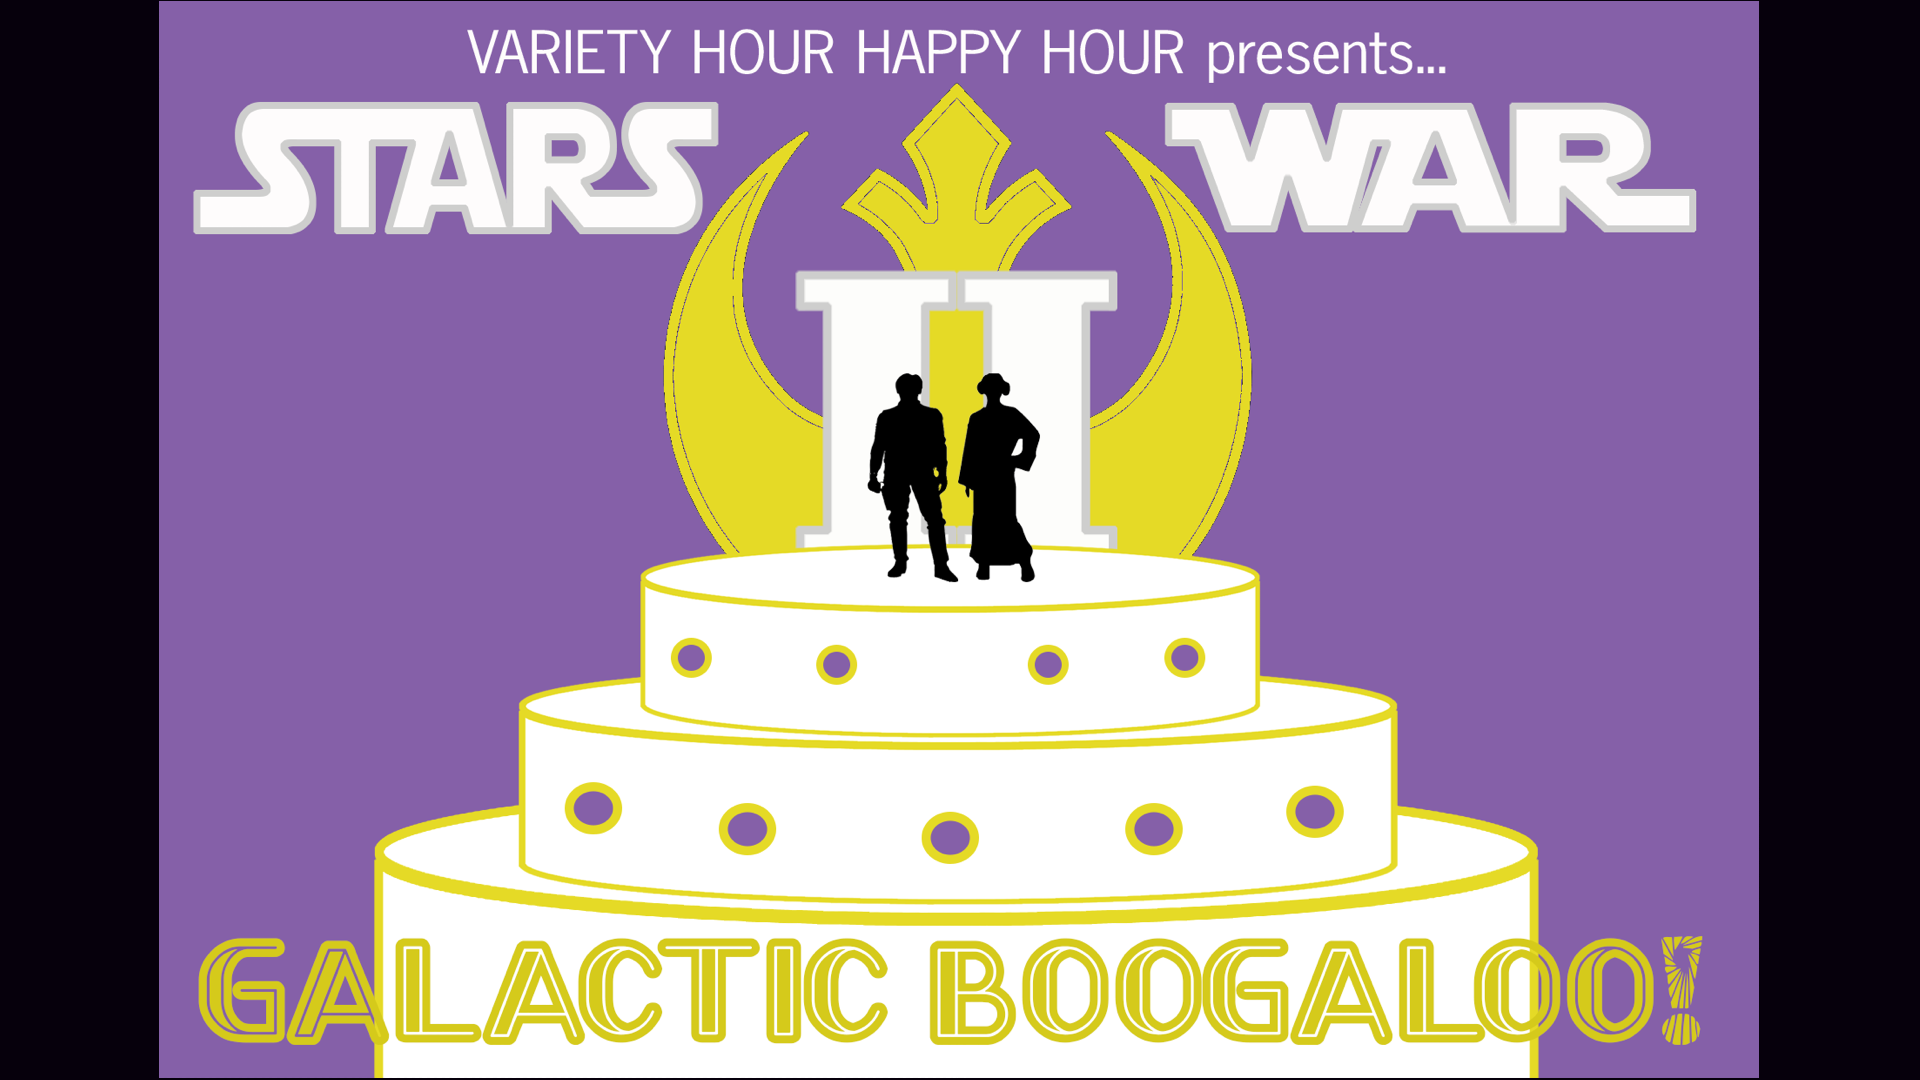 Variety Hour Happy Hour returns to a Galaxy far, far away in Stars War II - Galactic Boogaloo.  Han & Leia's wedding has the galaxy in an uproar, with bickering bridesmaids, force ghosts, amorous droids, and more family togetherness than anyone wants.  Can the Galaxy survive a Stars War wedding?   Shows May 5th & 6th @ 8pm at ComedySportz Milwaukee.  Tickets $10, or $5 with a toy or personal care product donation.  Purchase tickets online at  http://galacticboogaloo.bpt.me/   Note: This is not a ComedySportz production, all coupons and gift cards are not applicable to this performance.